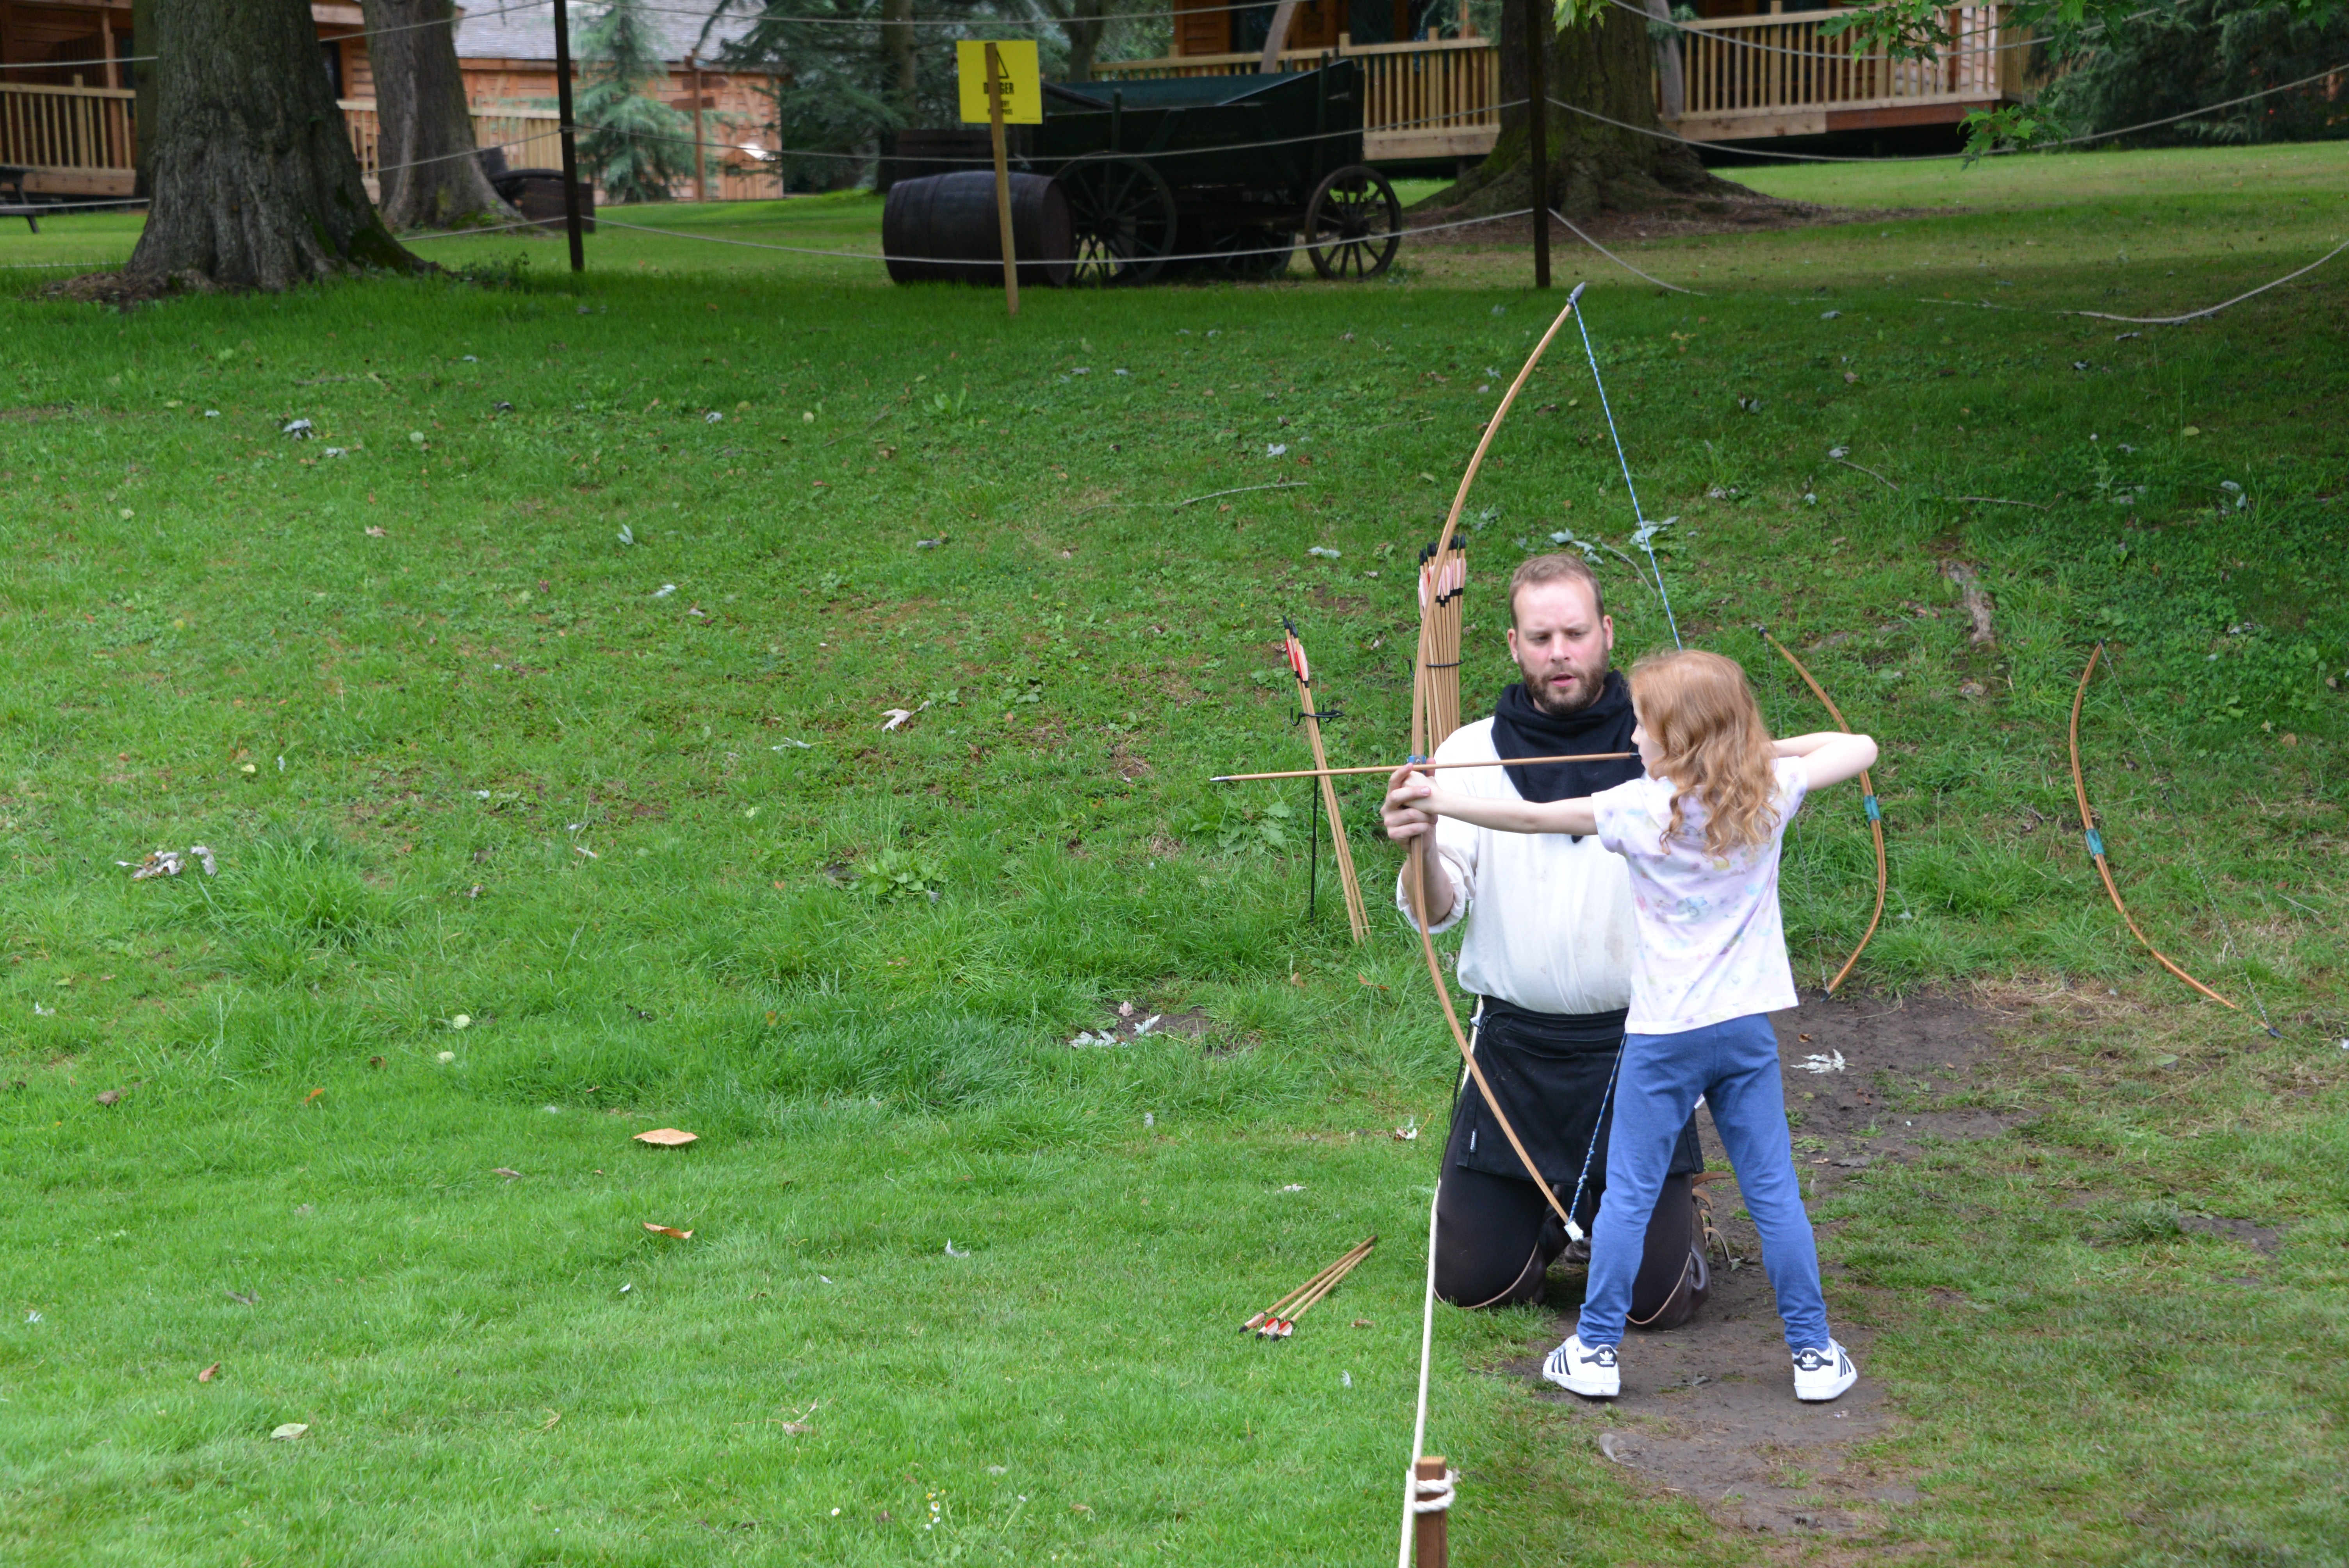 Archery at Warwick Castle